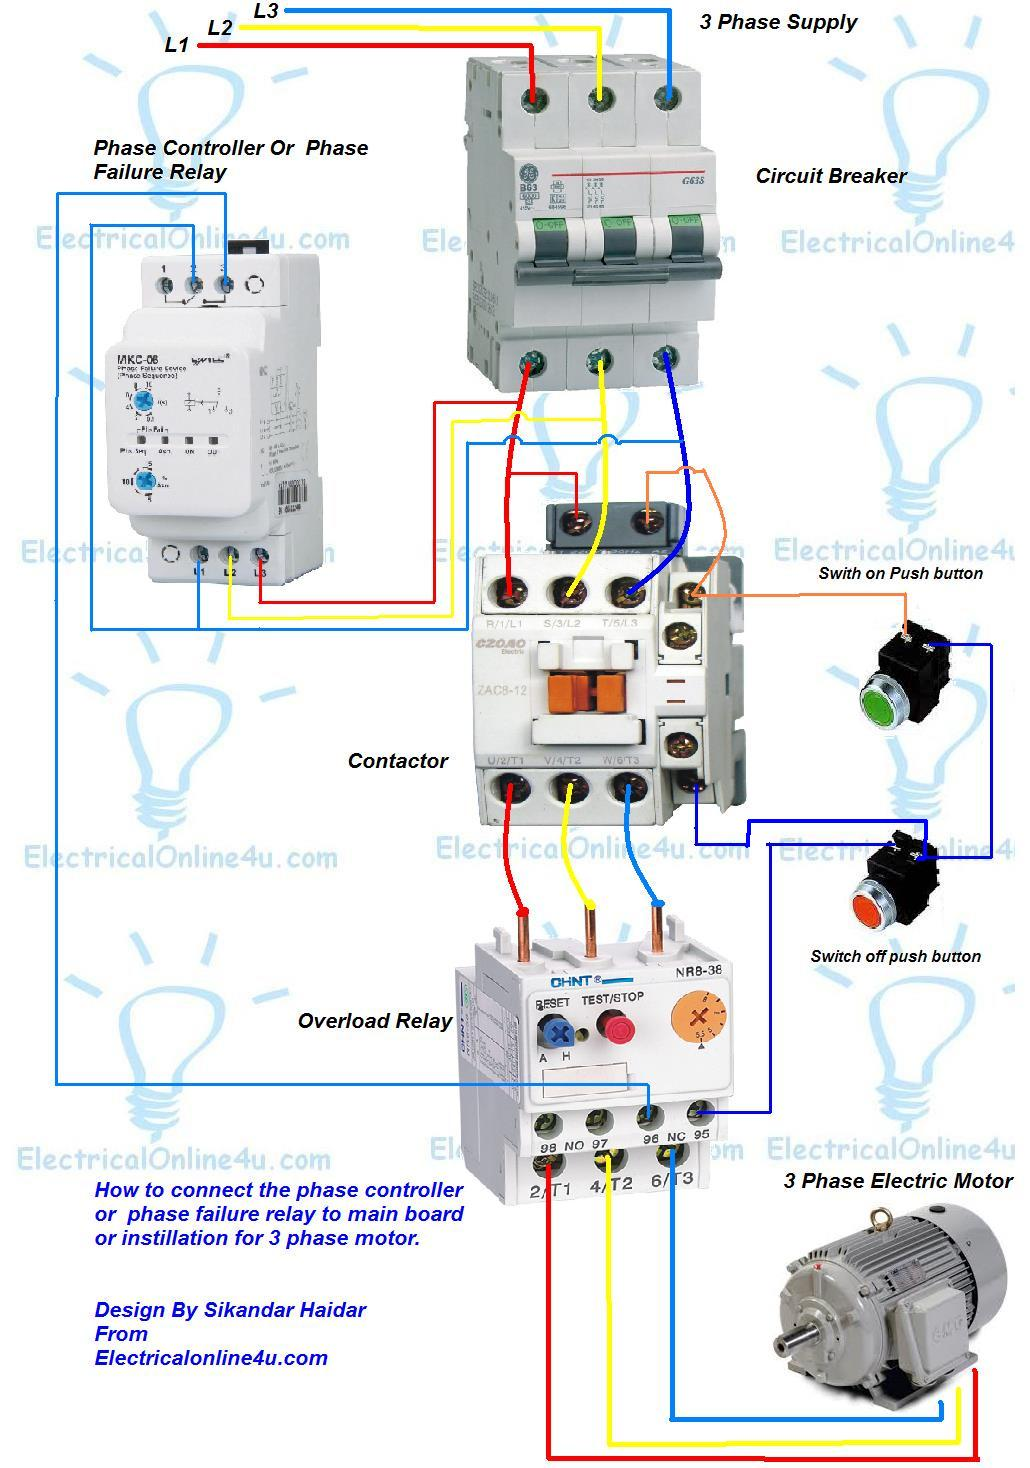 Phase%2Bfailure%2Brelay%2B %2Bphase%2Bcontroller%2Binstilaion%2Bin%2B3%2Bphase%2BMain%2Bboard%2Bor%2Bfor%2B3%2Bphase%2Bmotor phase controller wiring phase failure relay diagram electrical 3 phase power wiring diagram at gsmx.co